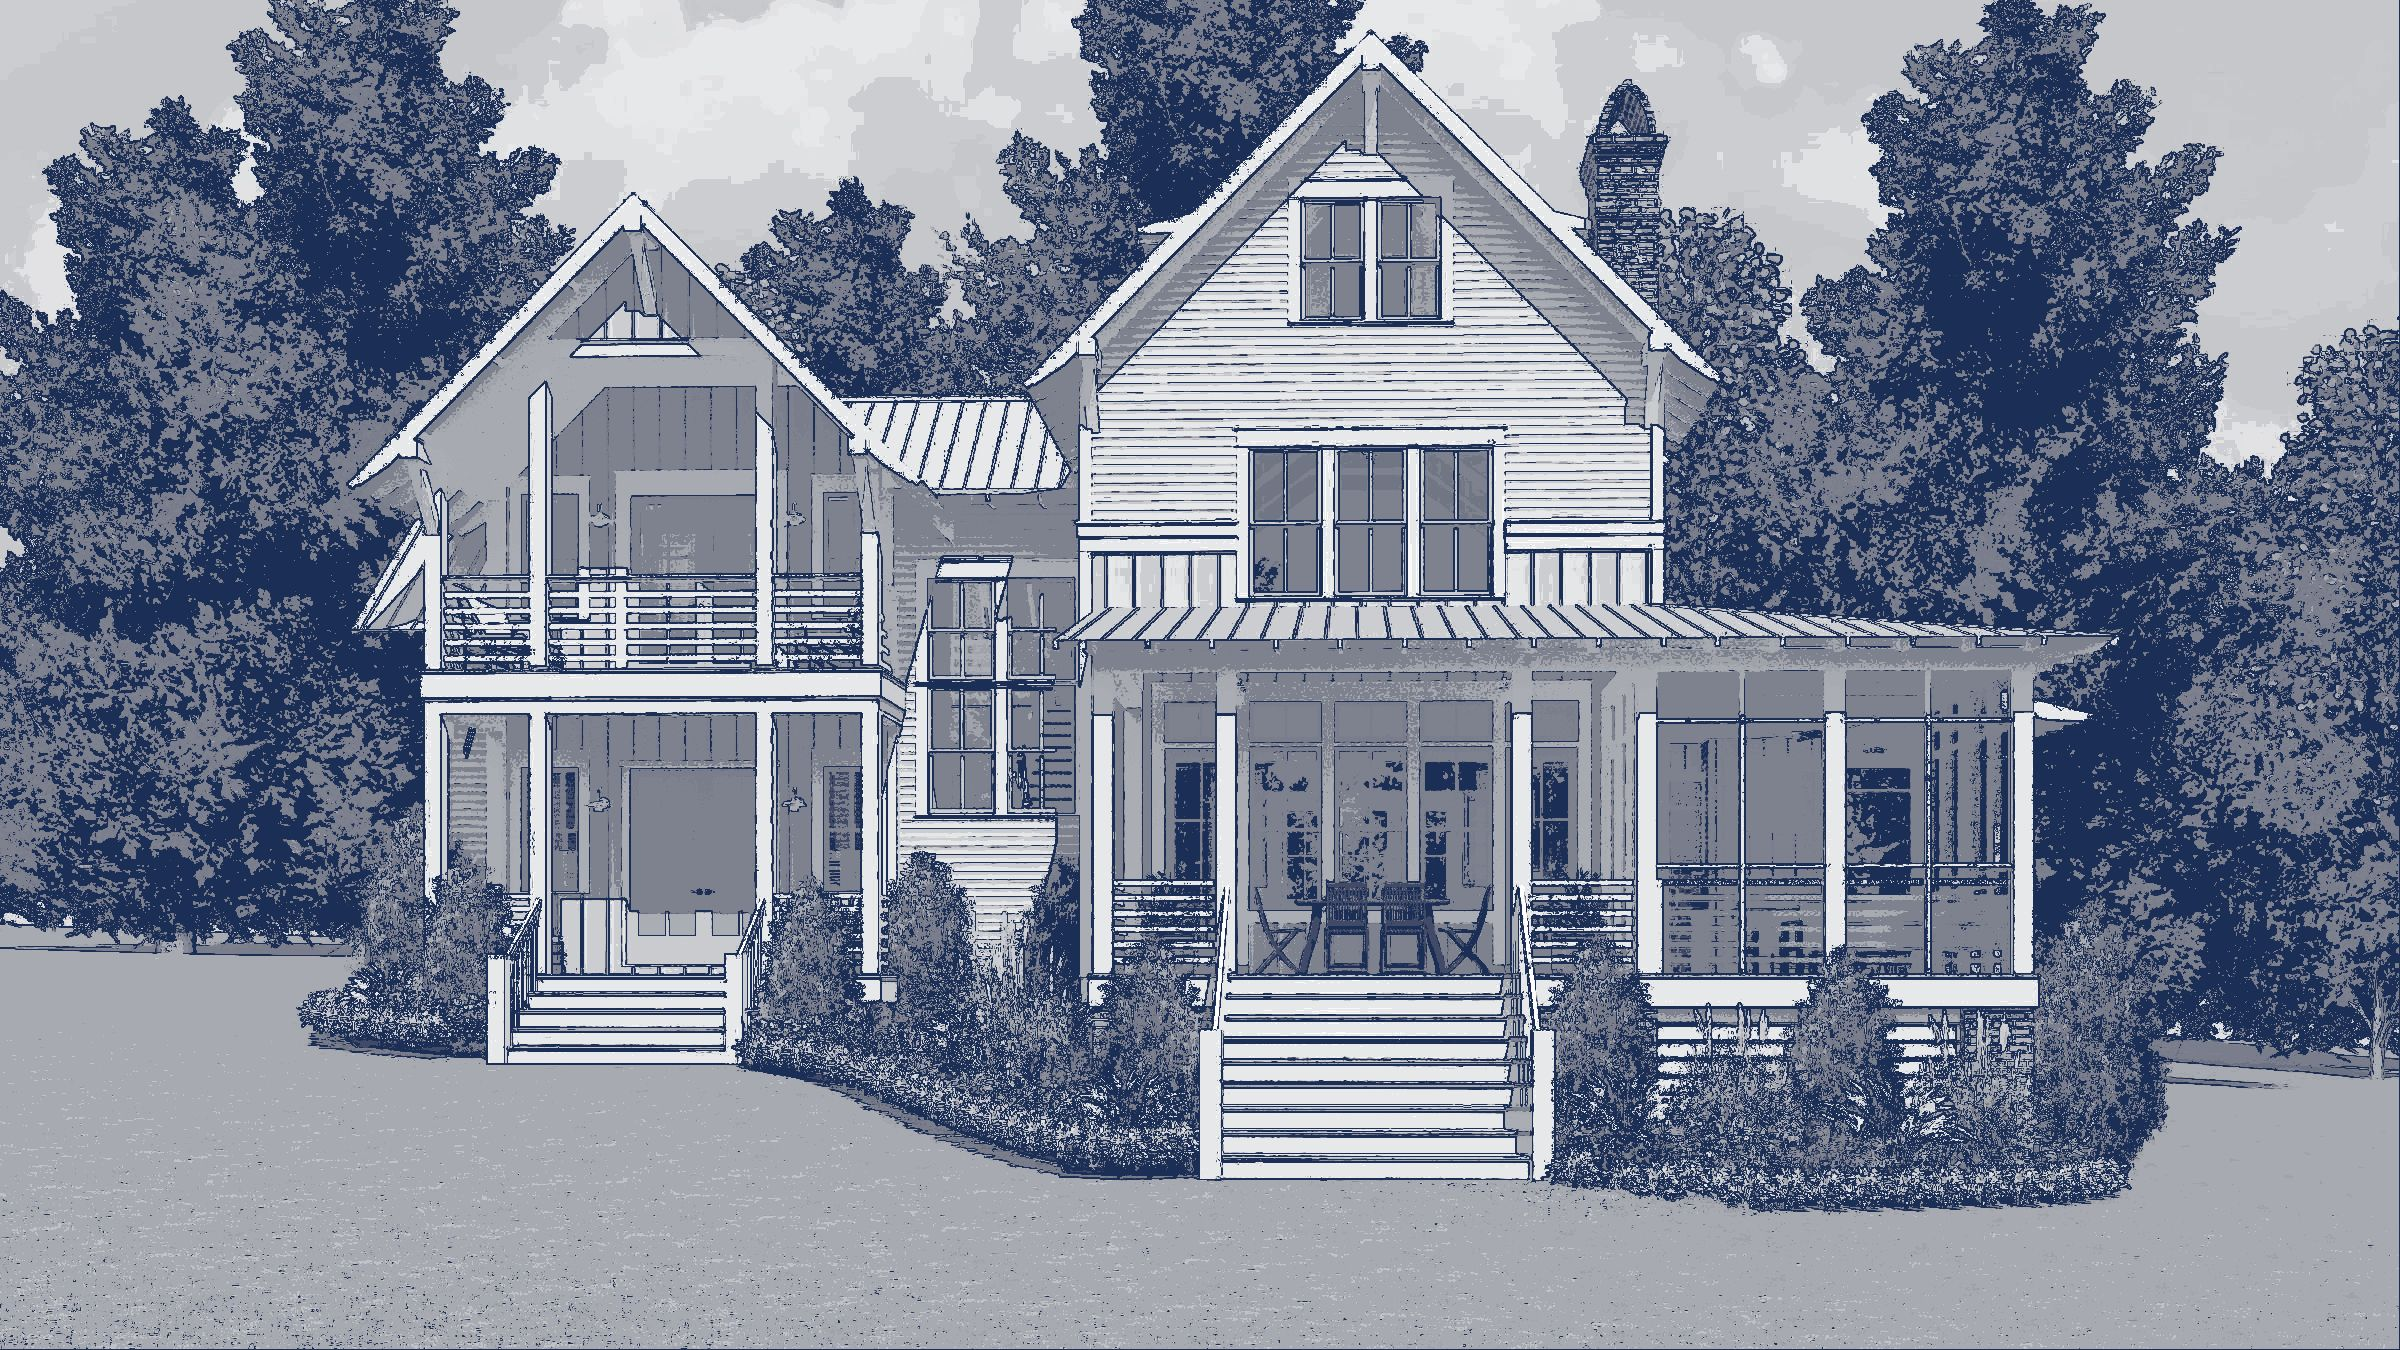 Pin by Al Zadora on Lake $$$ House Dream in 2019 | House plans ... Waterfront House Plans Southern Living on traditional house plans, ranch house plans, craftsman house plans, historical concepts house plans, luxury home plans, house beautiful house plans, southern house with brick wall, southern house plans with porches, southern homes, homestead house plans, plantation house plans, small house plans, rustic house plans, veranda house plans, william poole home plans, stone cottage house plans, frank betz house plans, country house plans, coastal house plans, dog trot house plans,